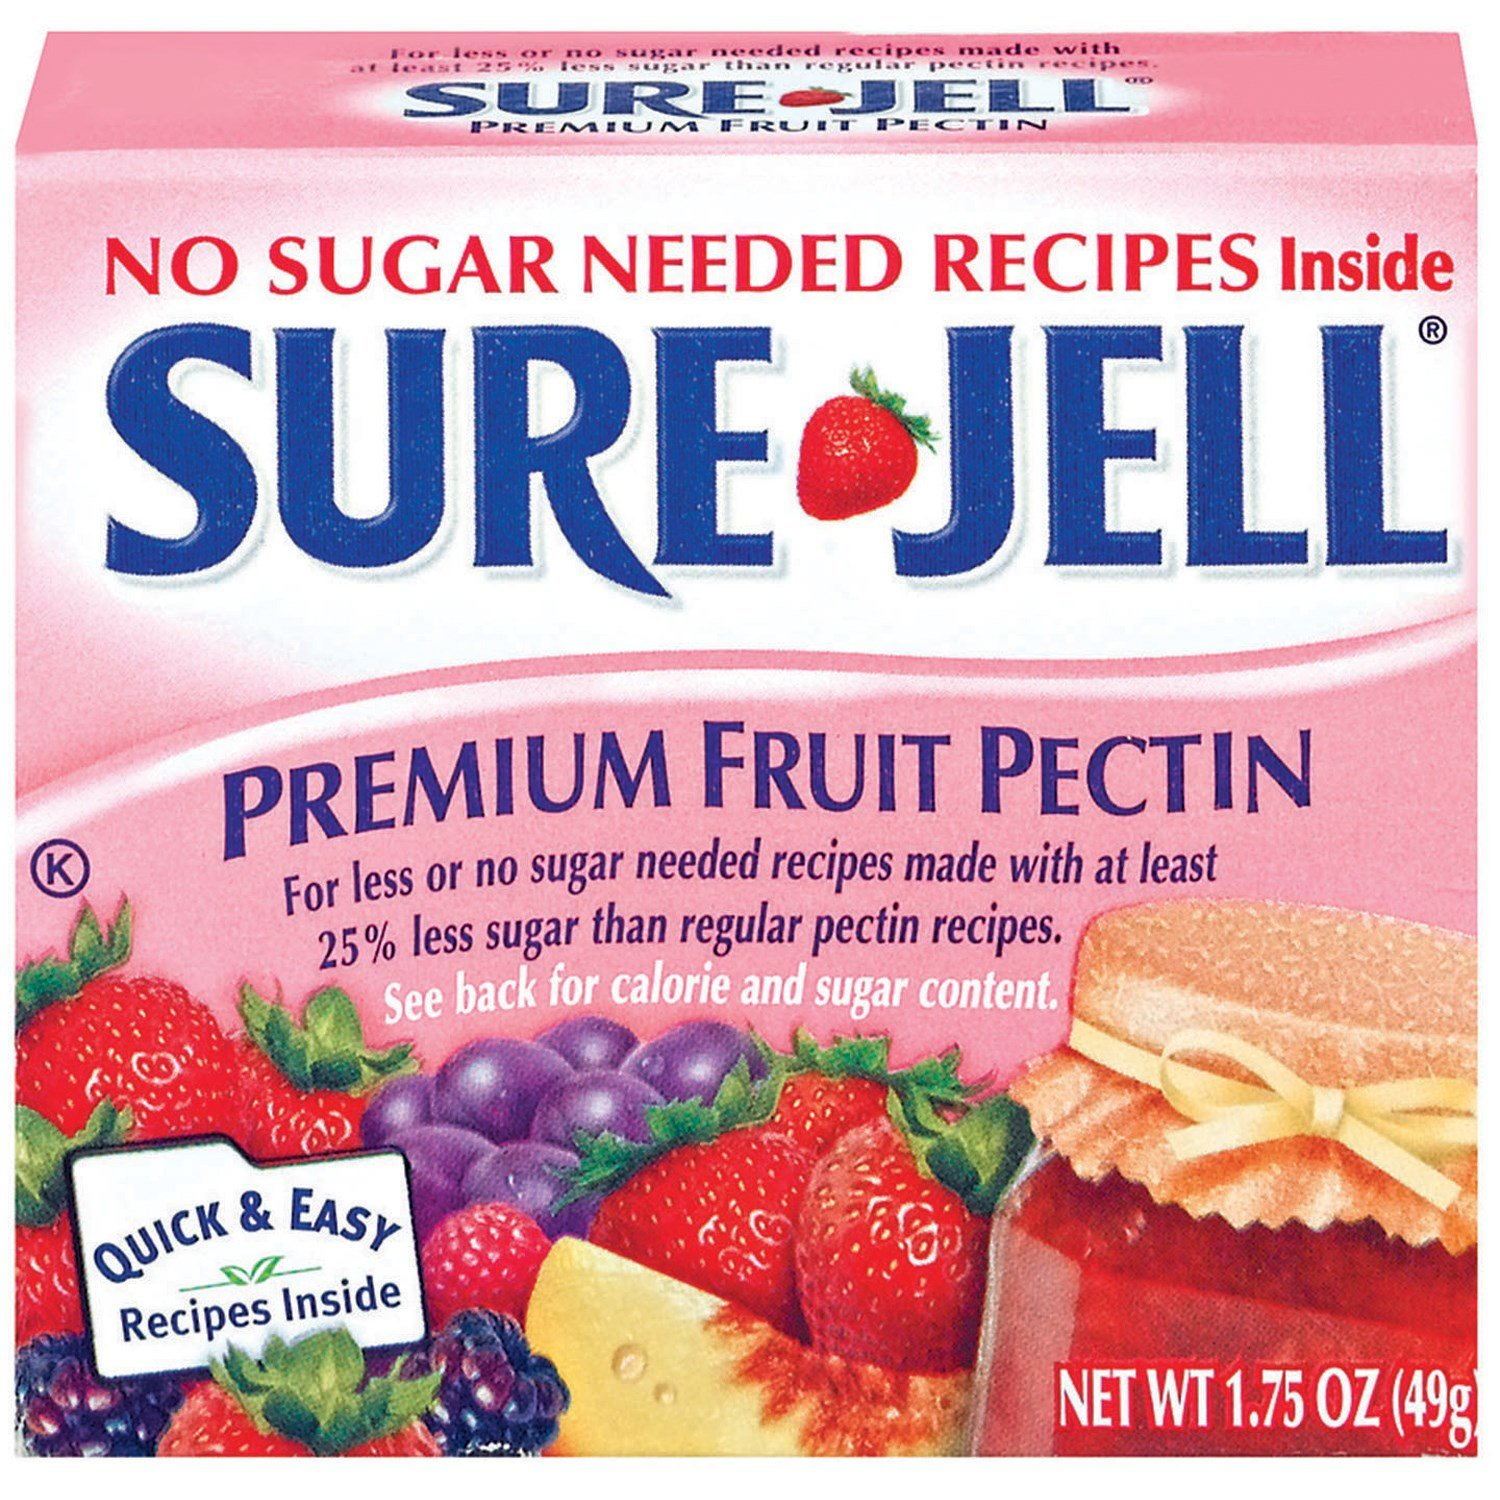 Sure Light Gelatin, 1.75 Ounce -- 24 Case by Kraft (Image #1)